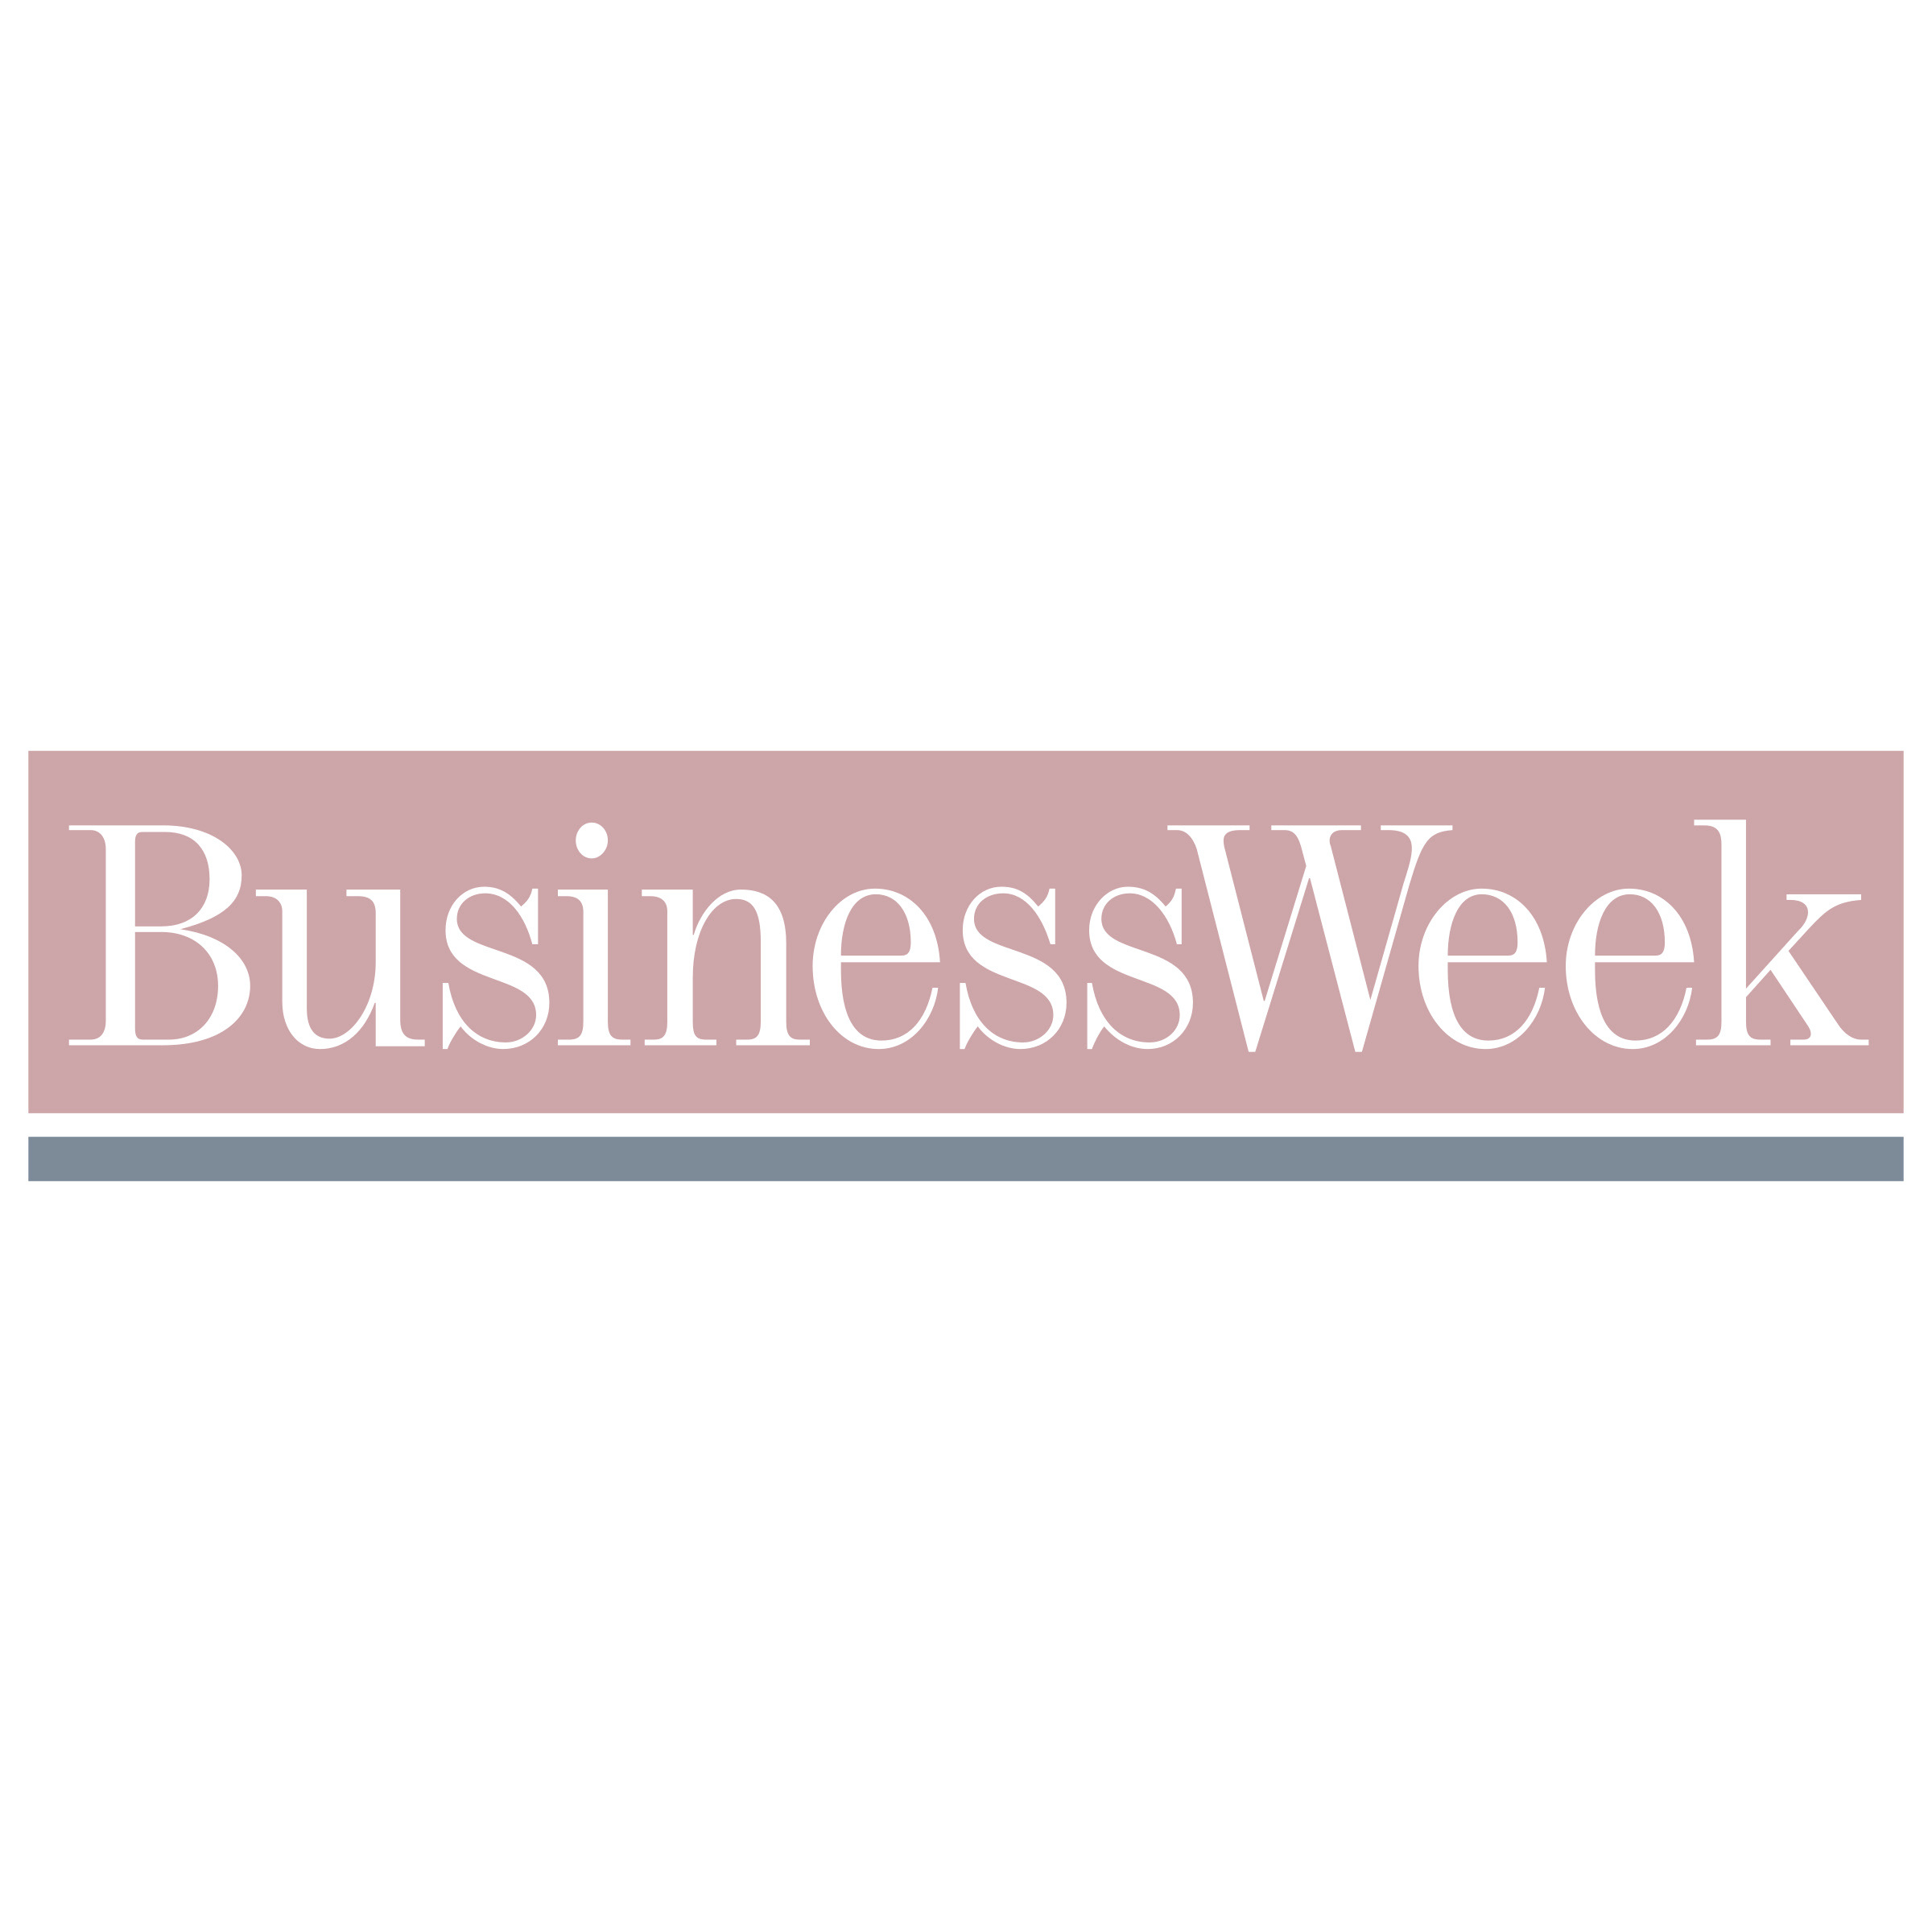 businessweek-1-logo-png-transparent.png